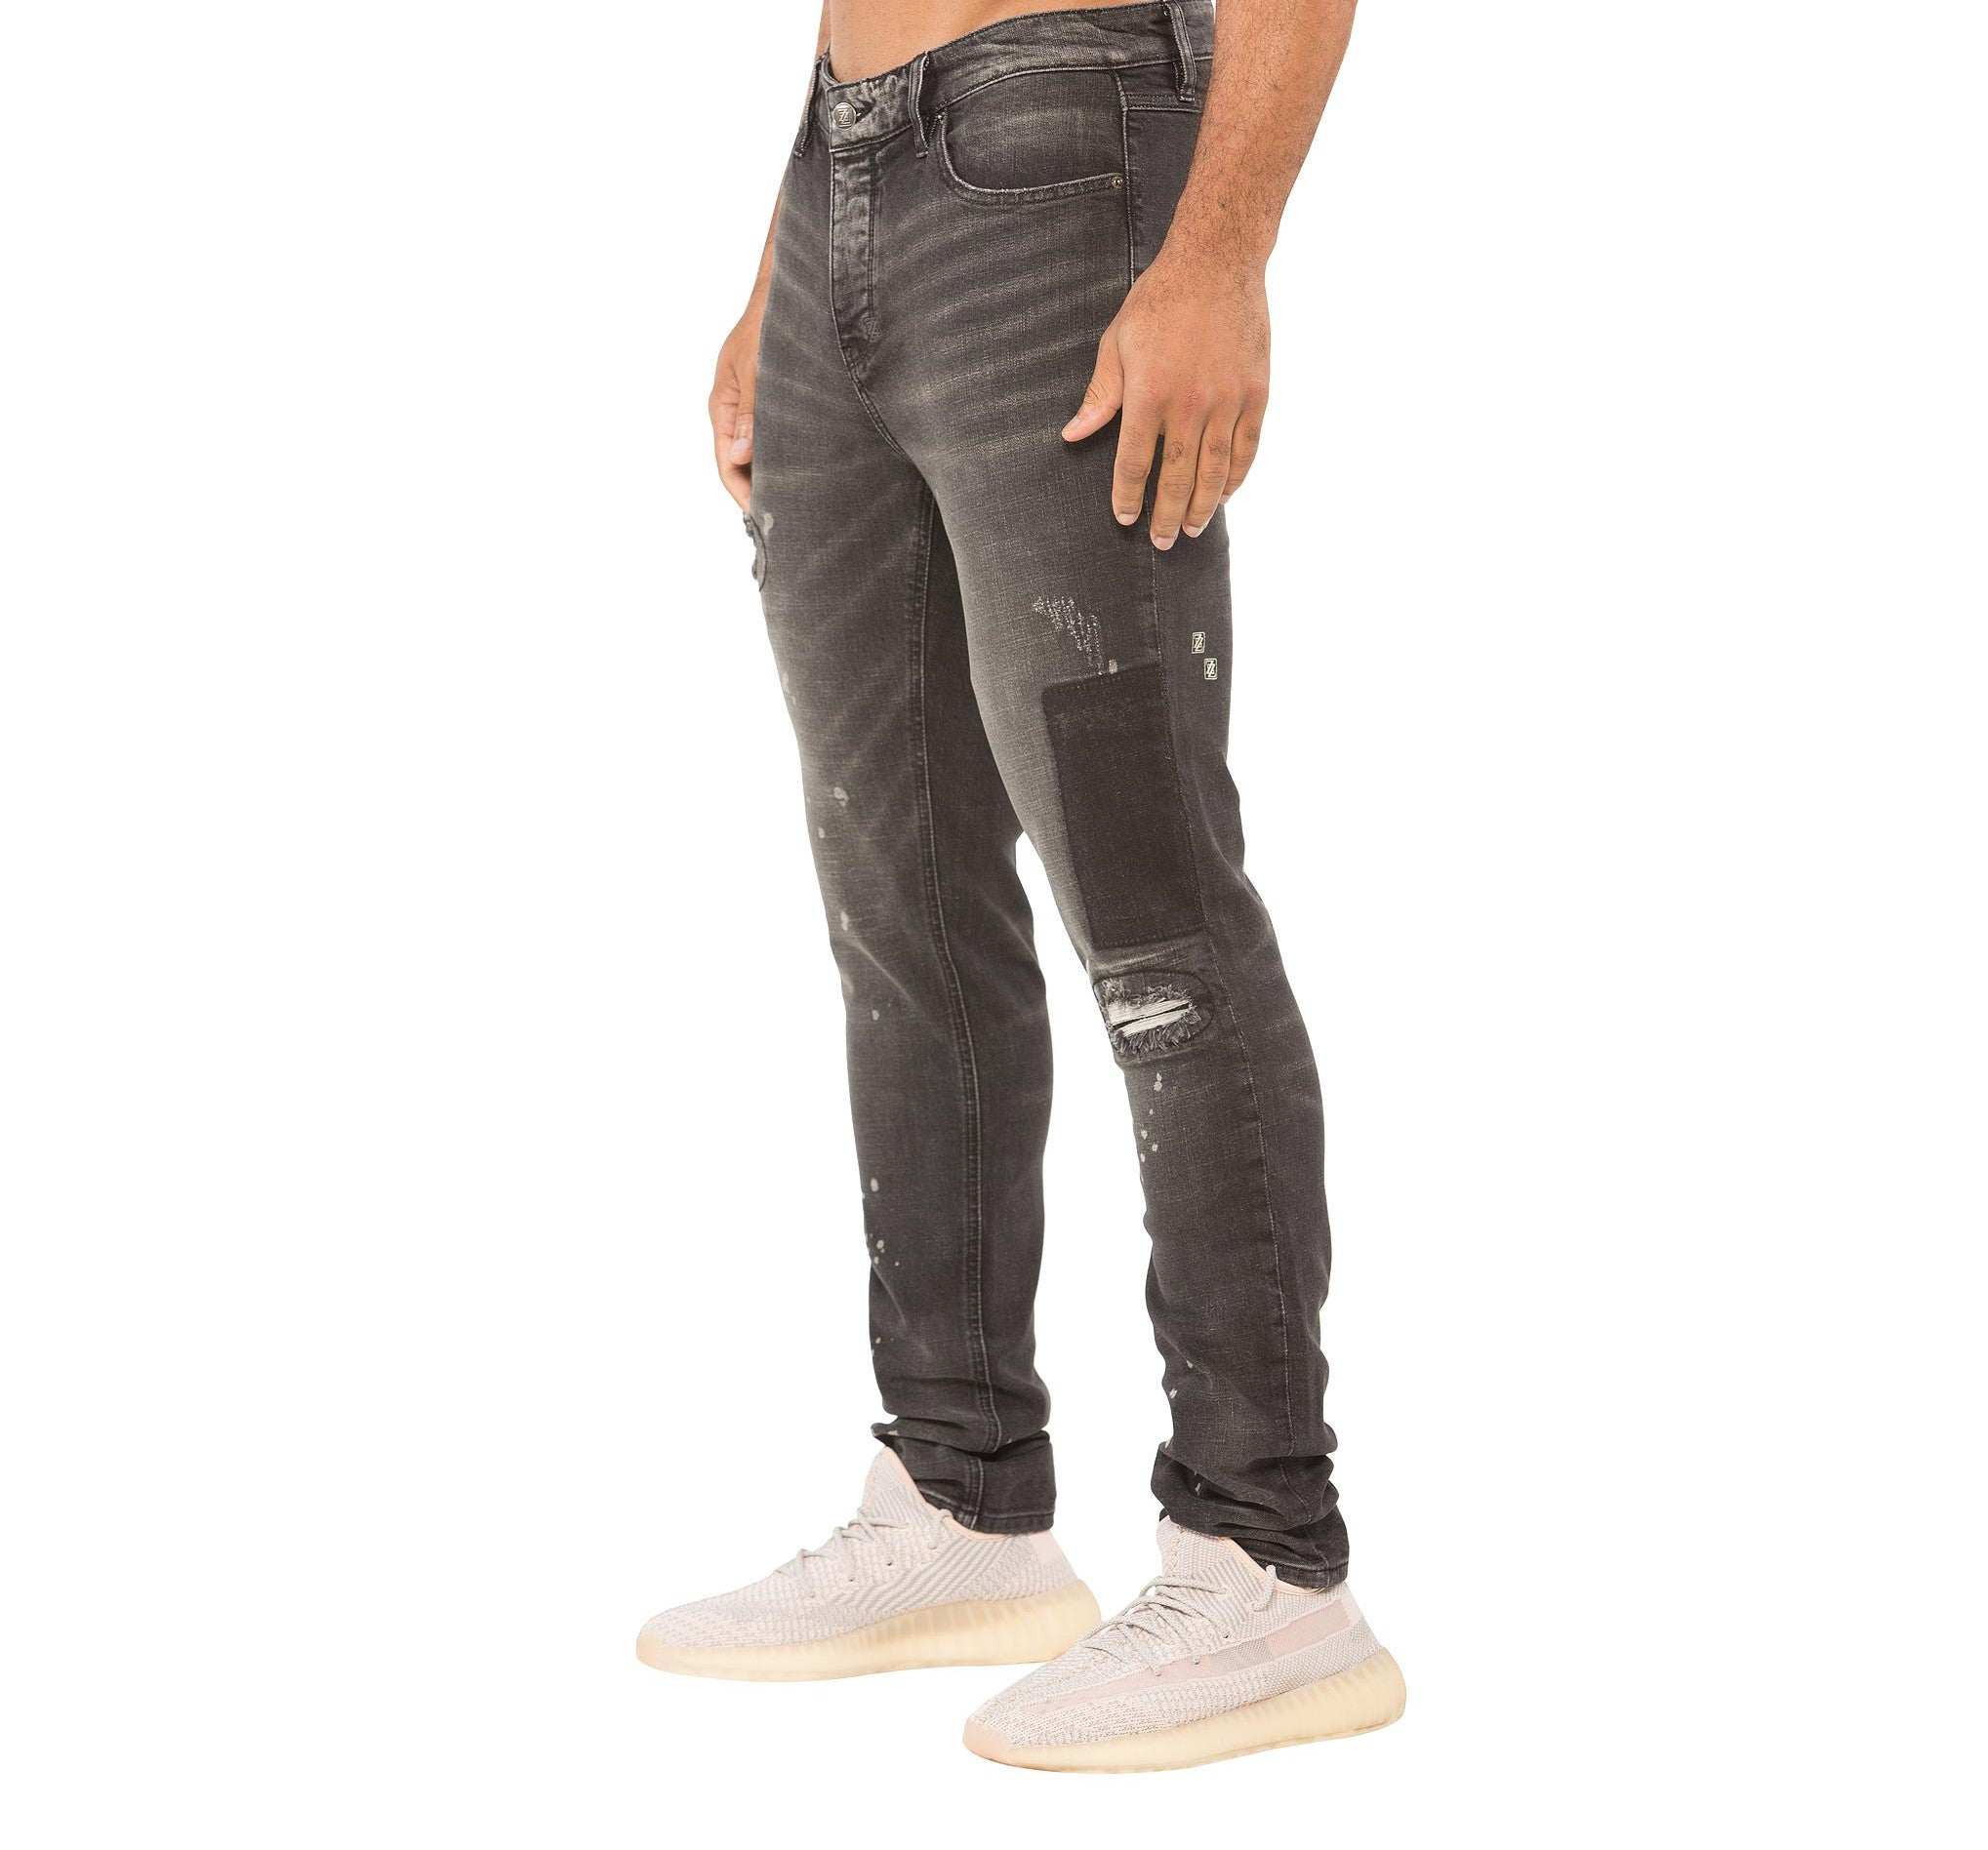 BARCELONA JEAN - BLACK WASH